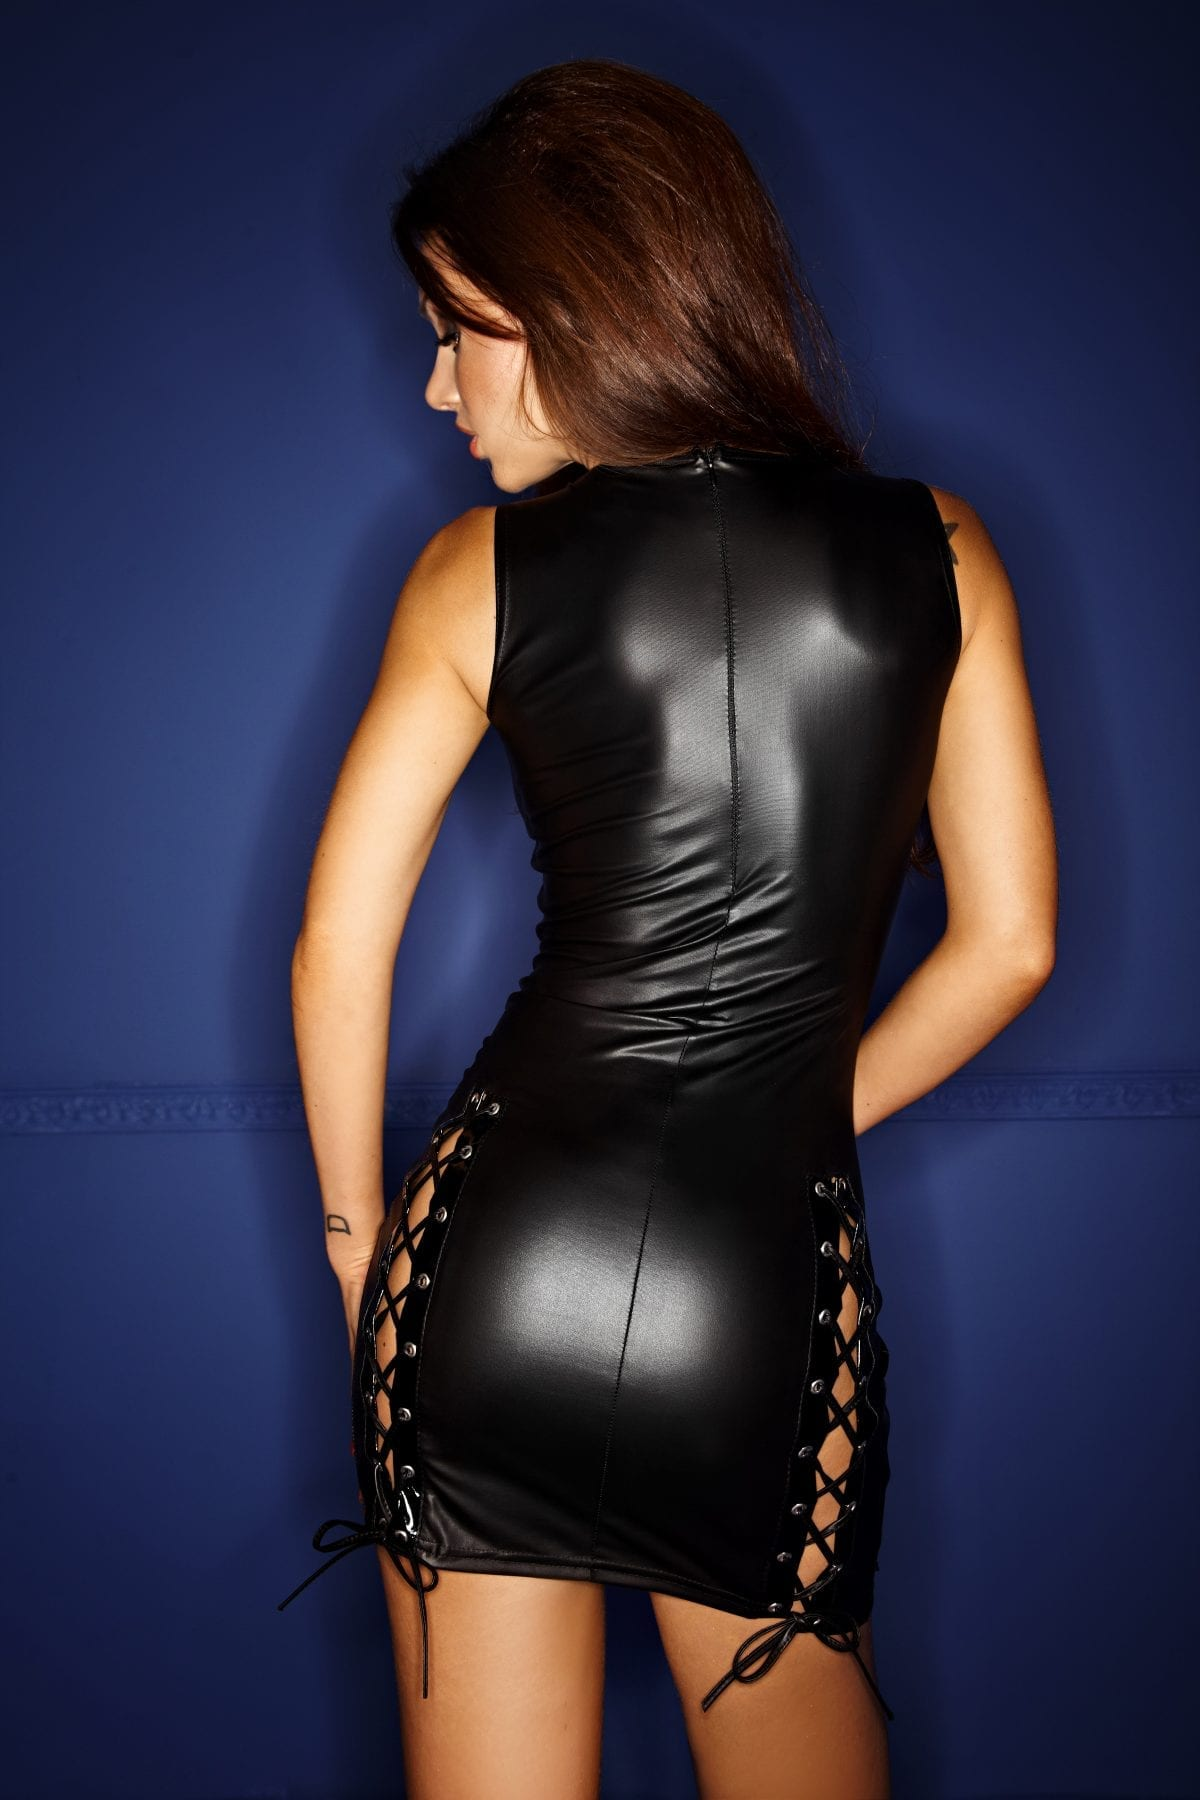 F079 women black fetish powerwetlook short dress with lace on chest and hip perfect for pole dancer clothing